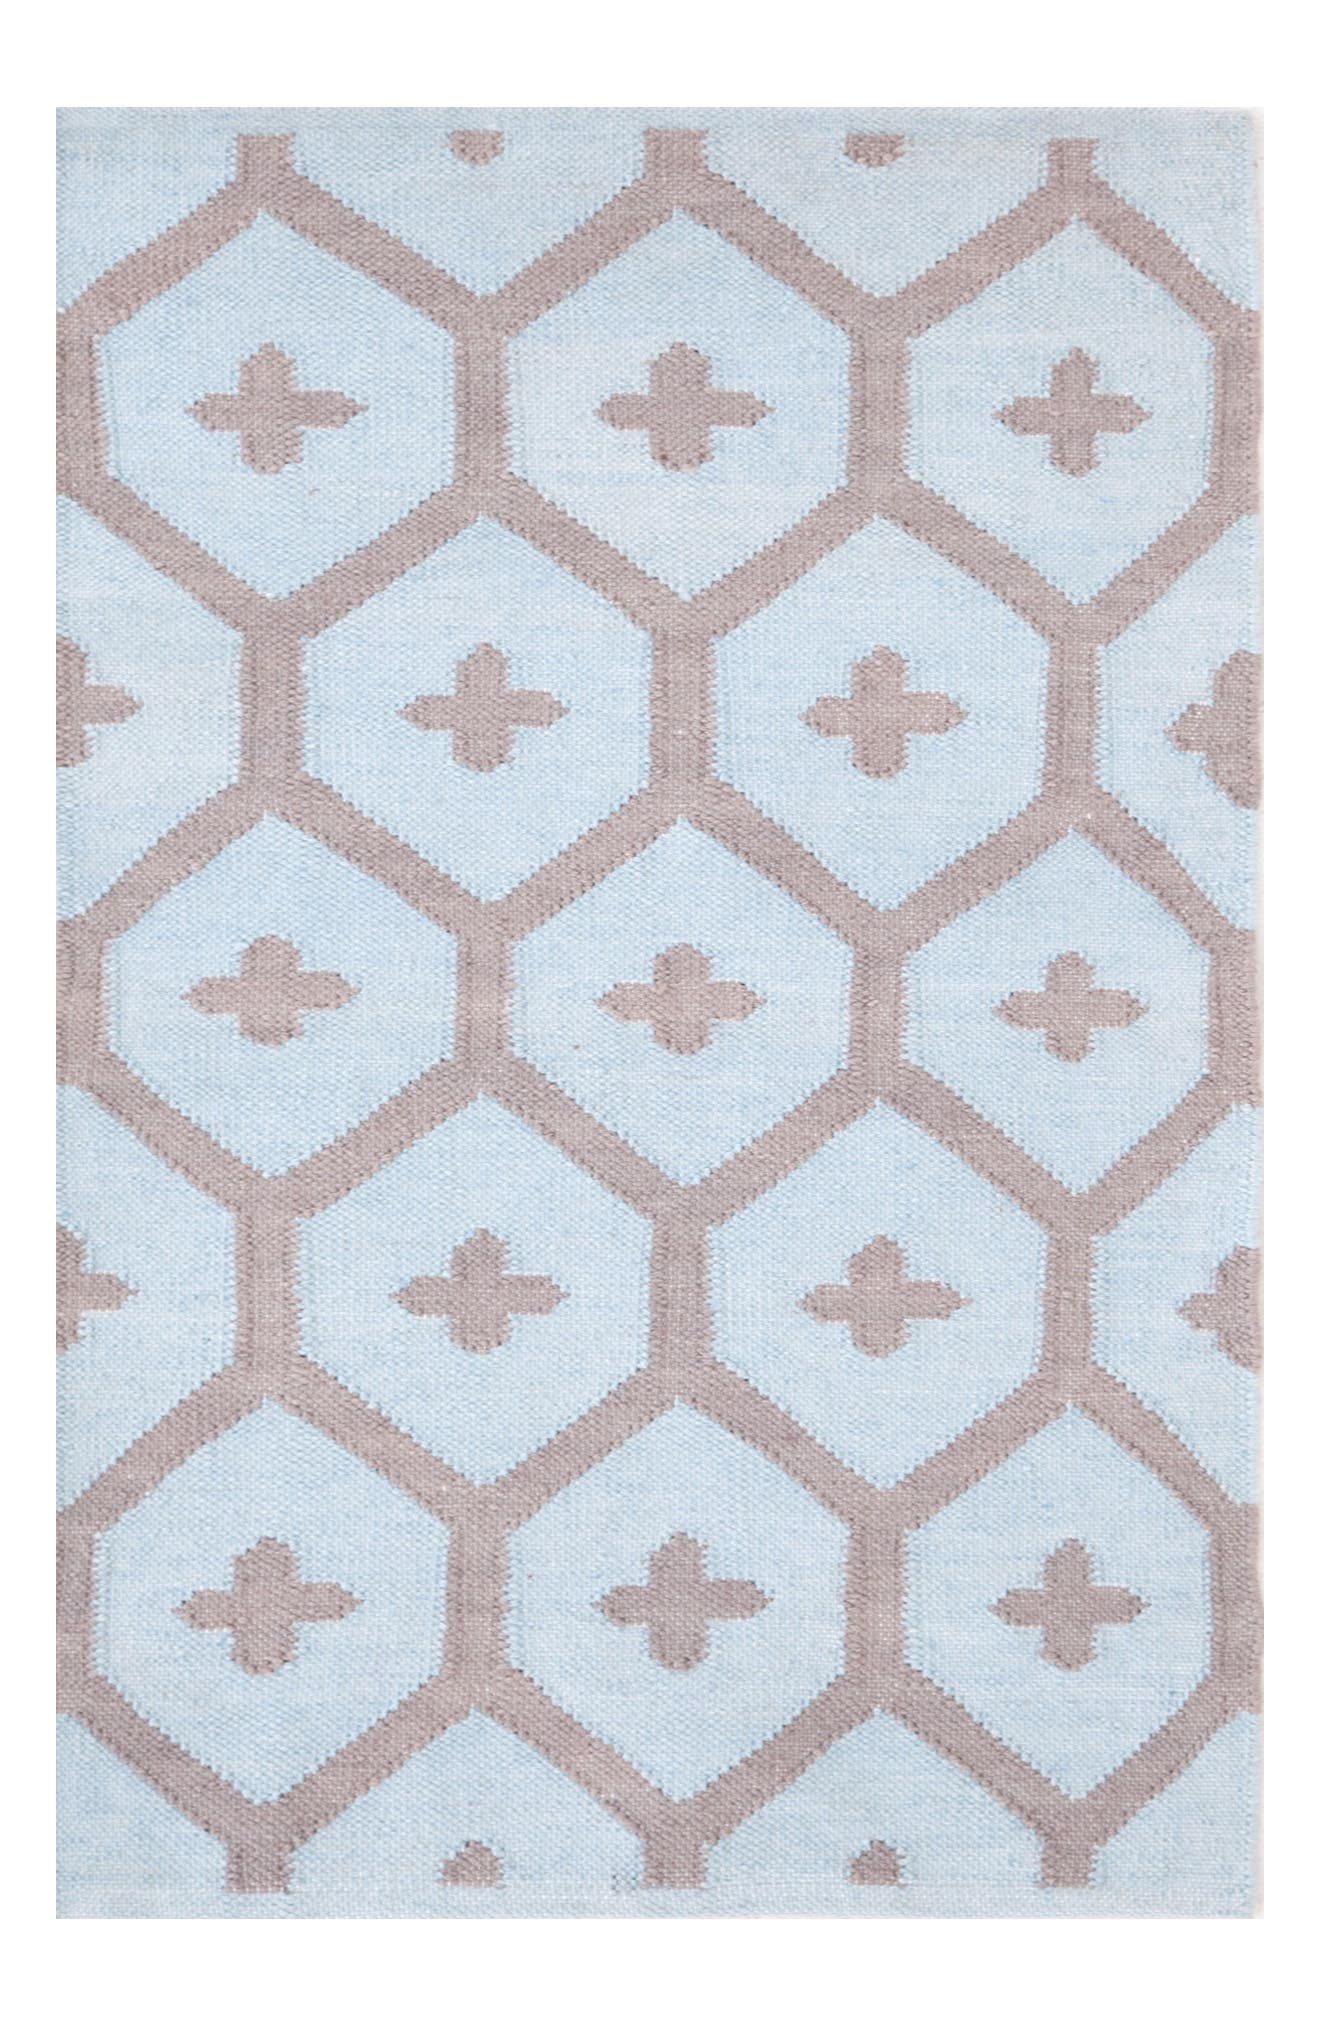 'Elizabeth' Indoor/Outdoor Rug,                             Alternate thumbnail 3, color,                             400